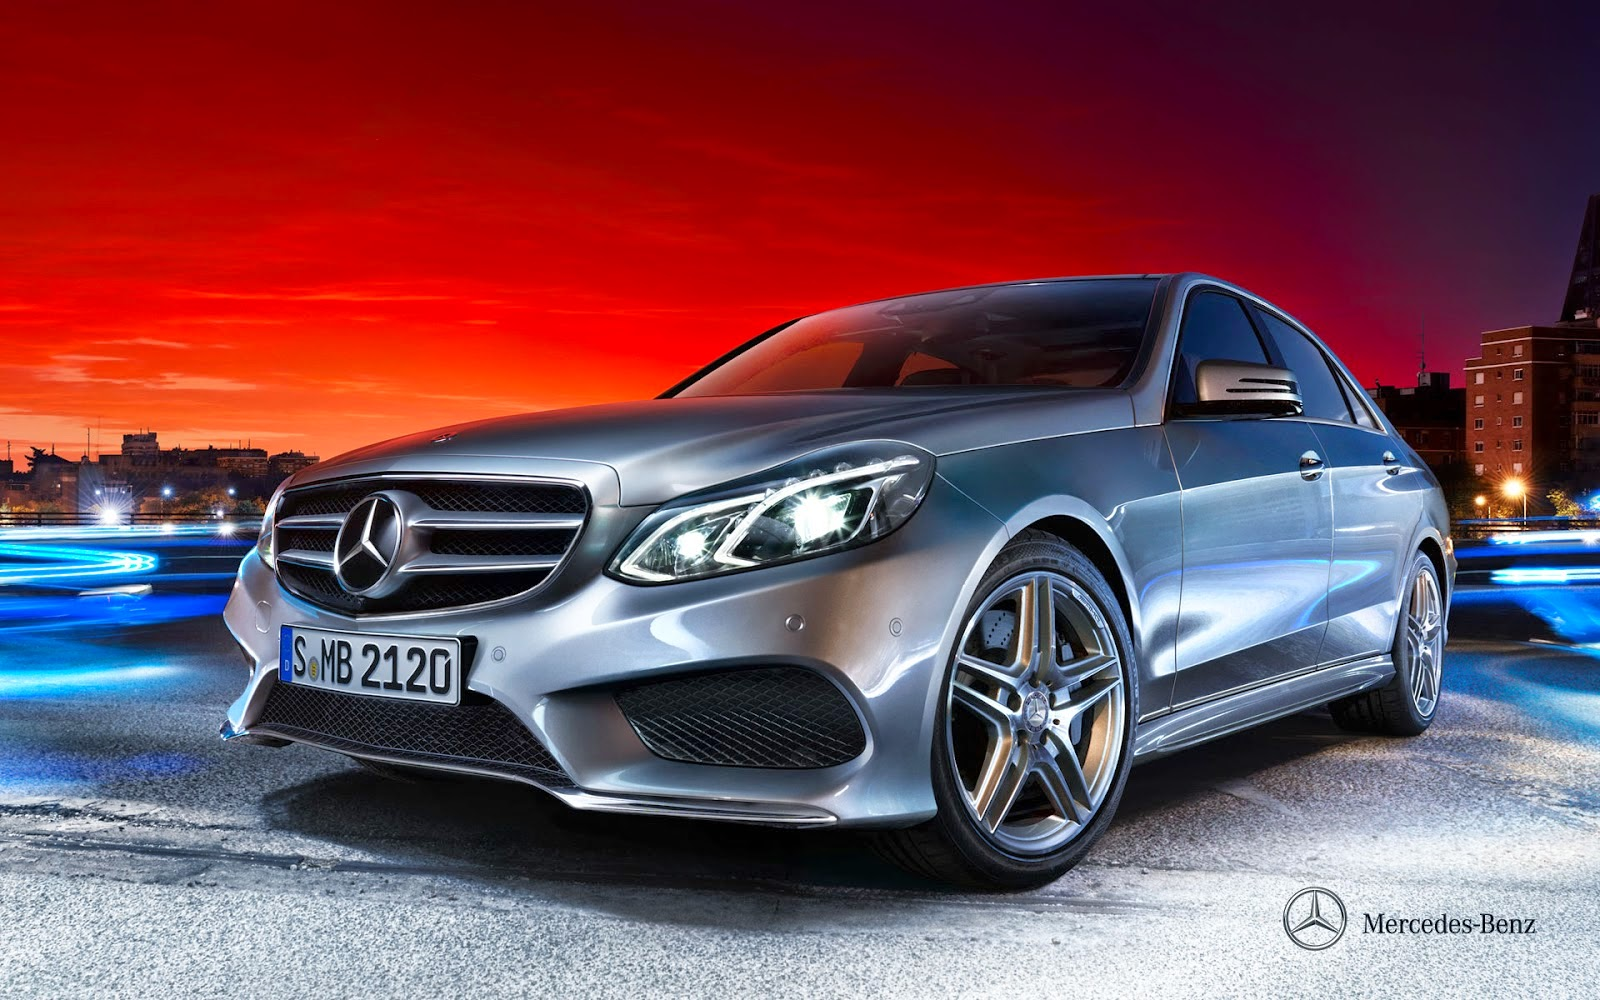 2014 Mercedes-benz E-class Wallpaper | Car Reviews